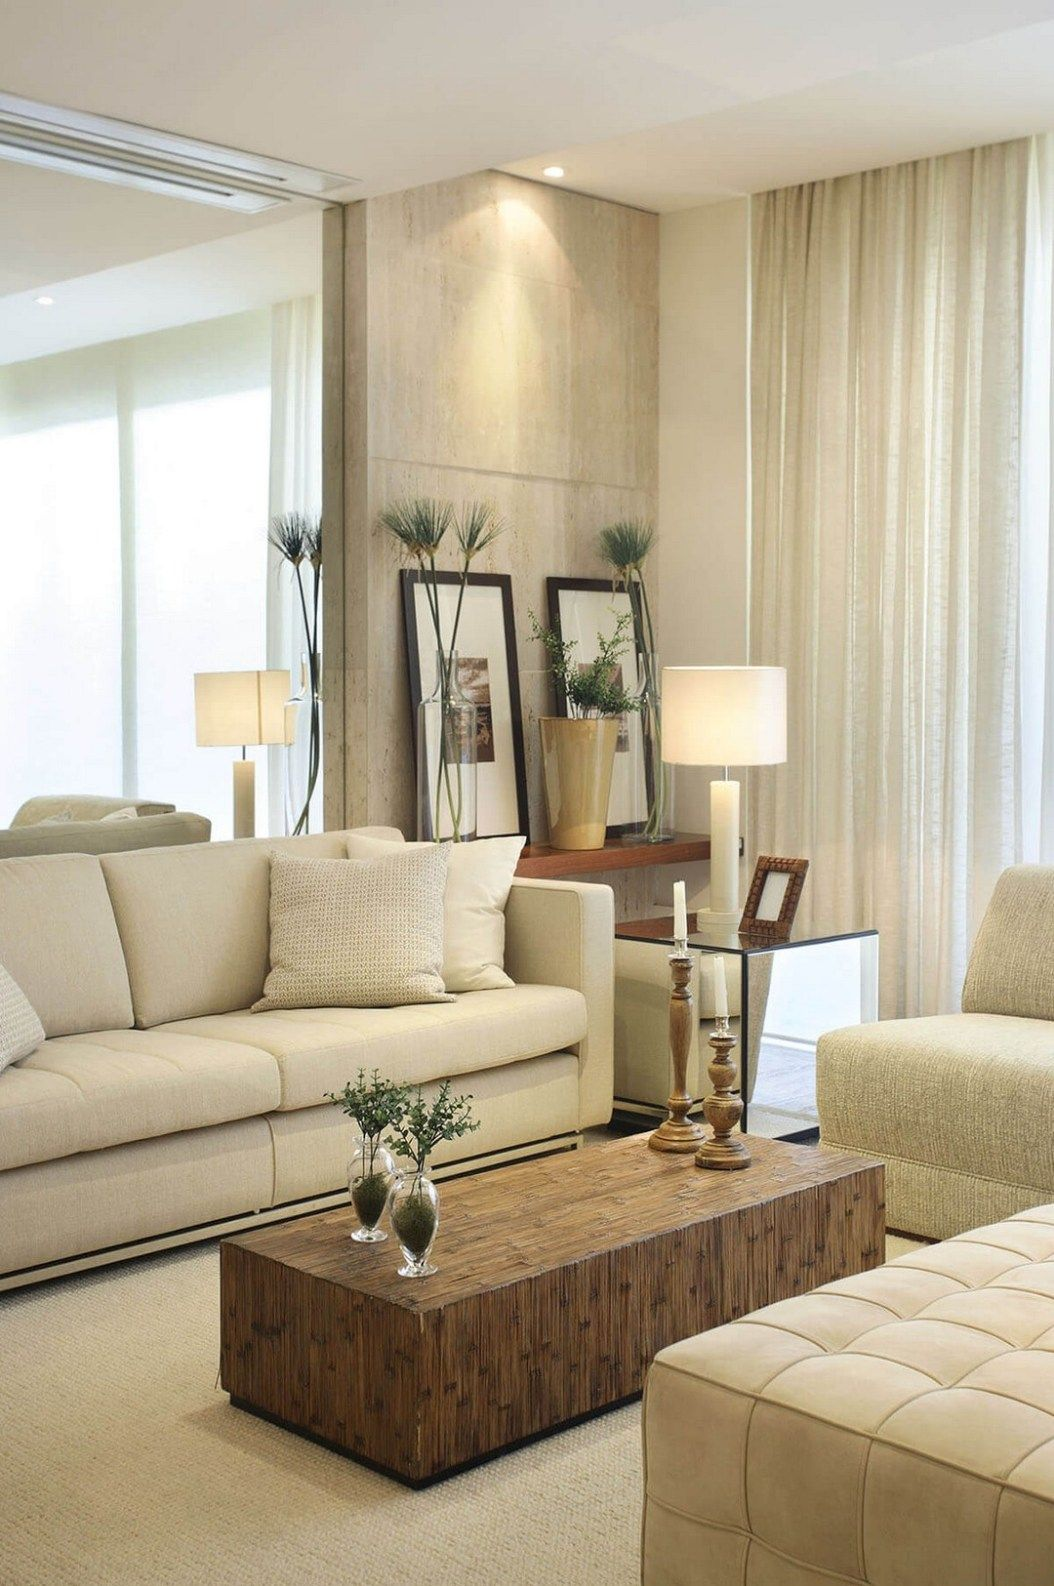 Best 23 Charming Beige Living Room Design Ideas To Brighten Up 400 x 300